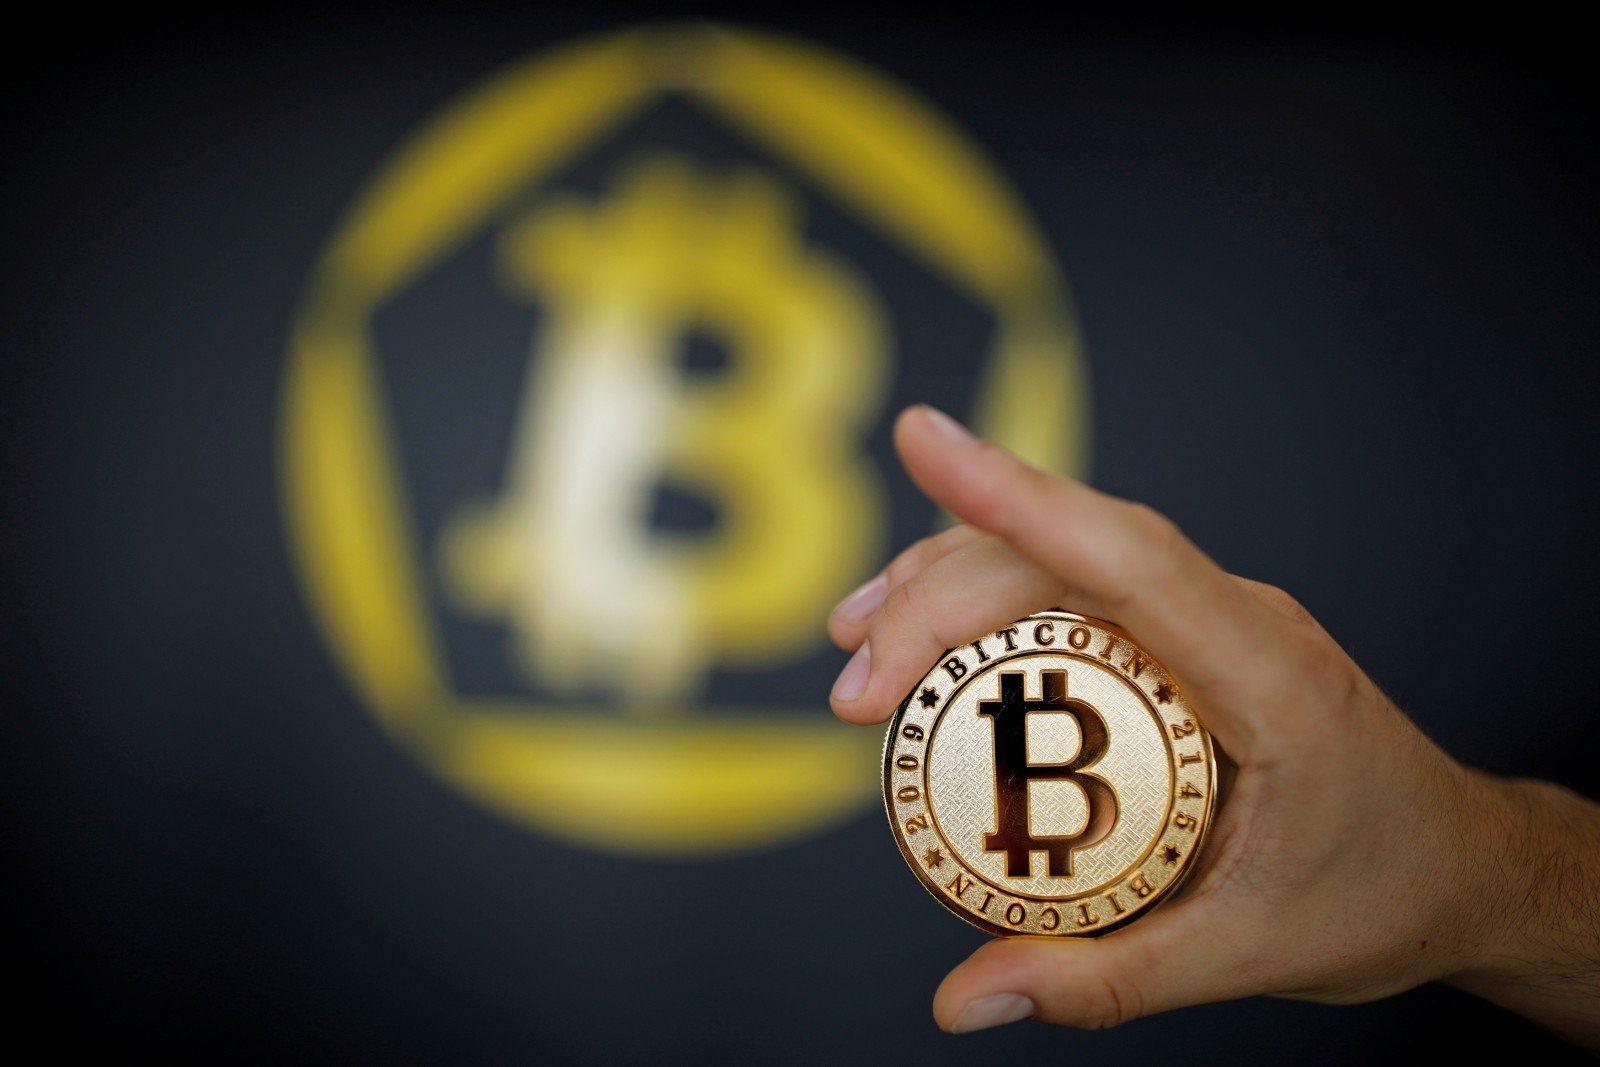 Man held for cheating people of Rs 52 crore in bitcoin scam